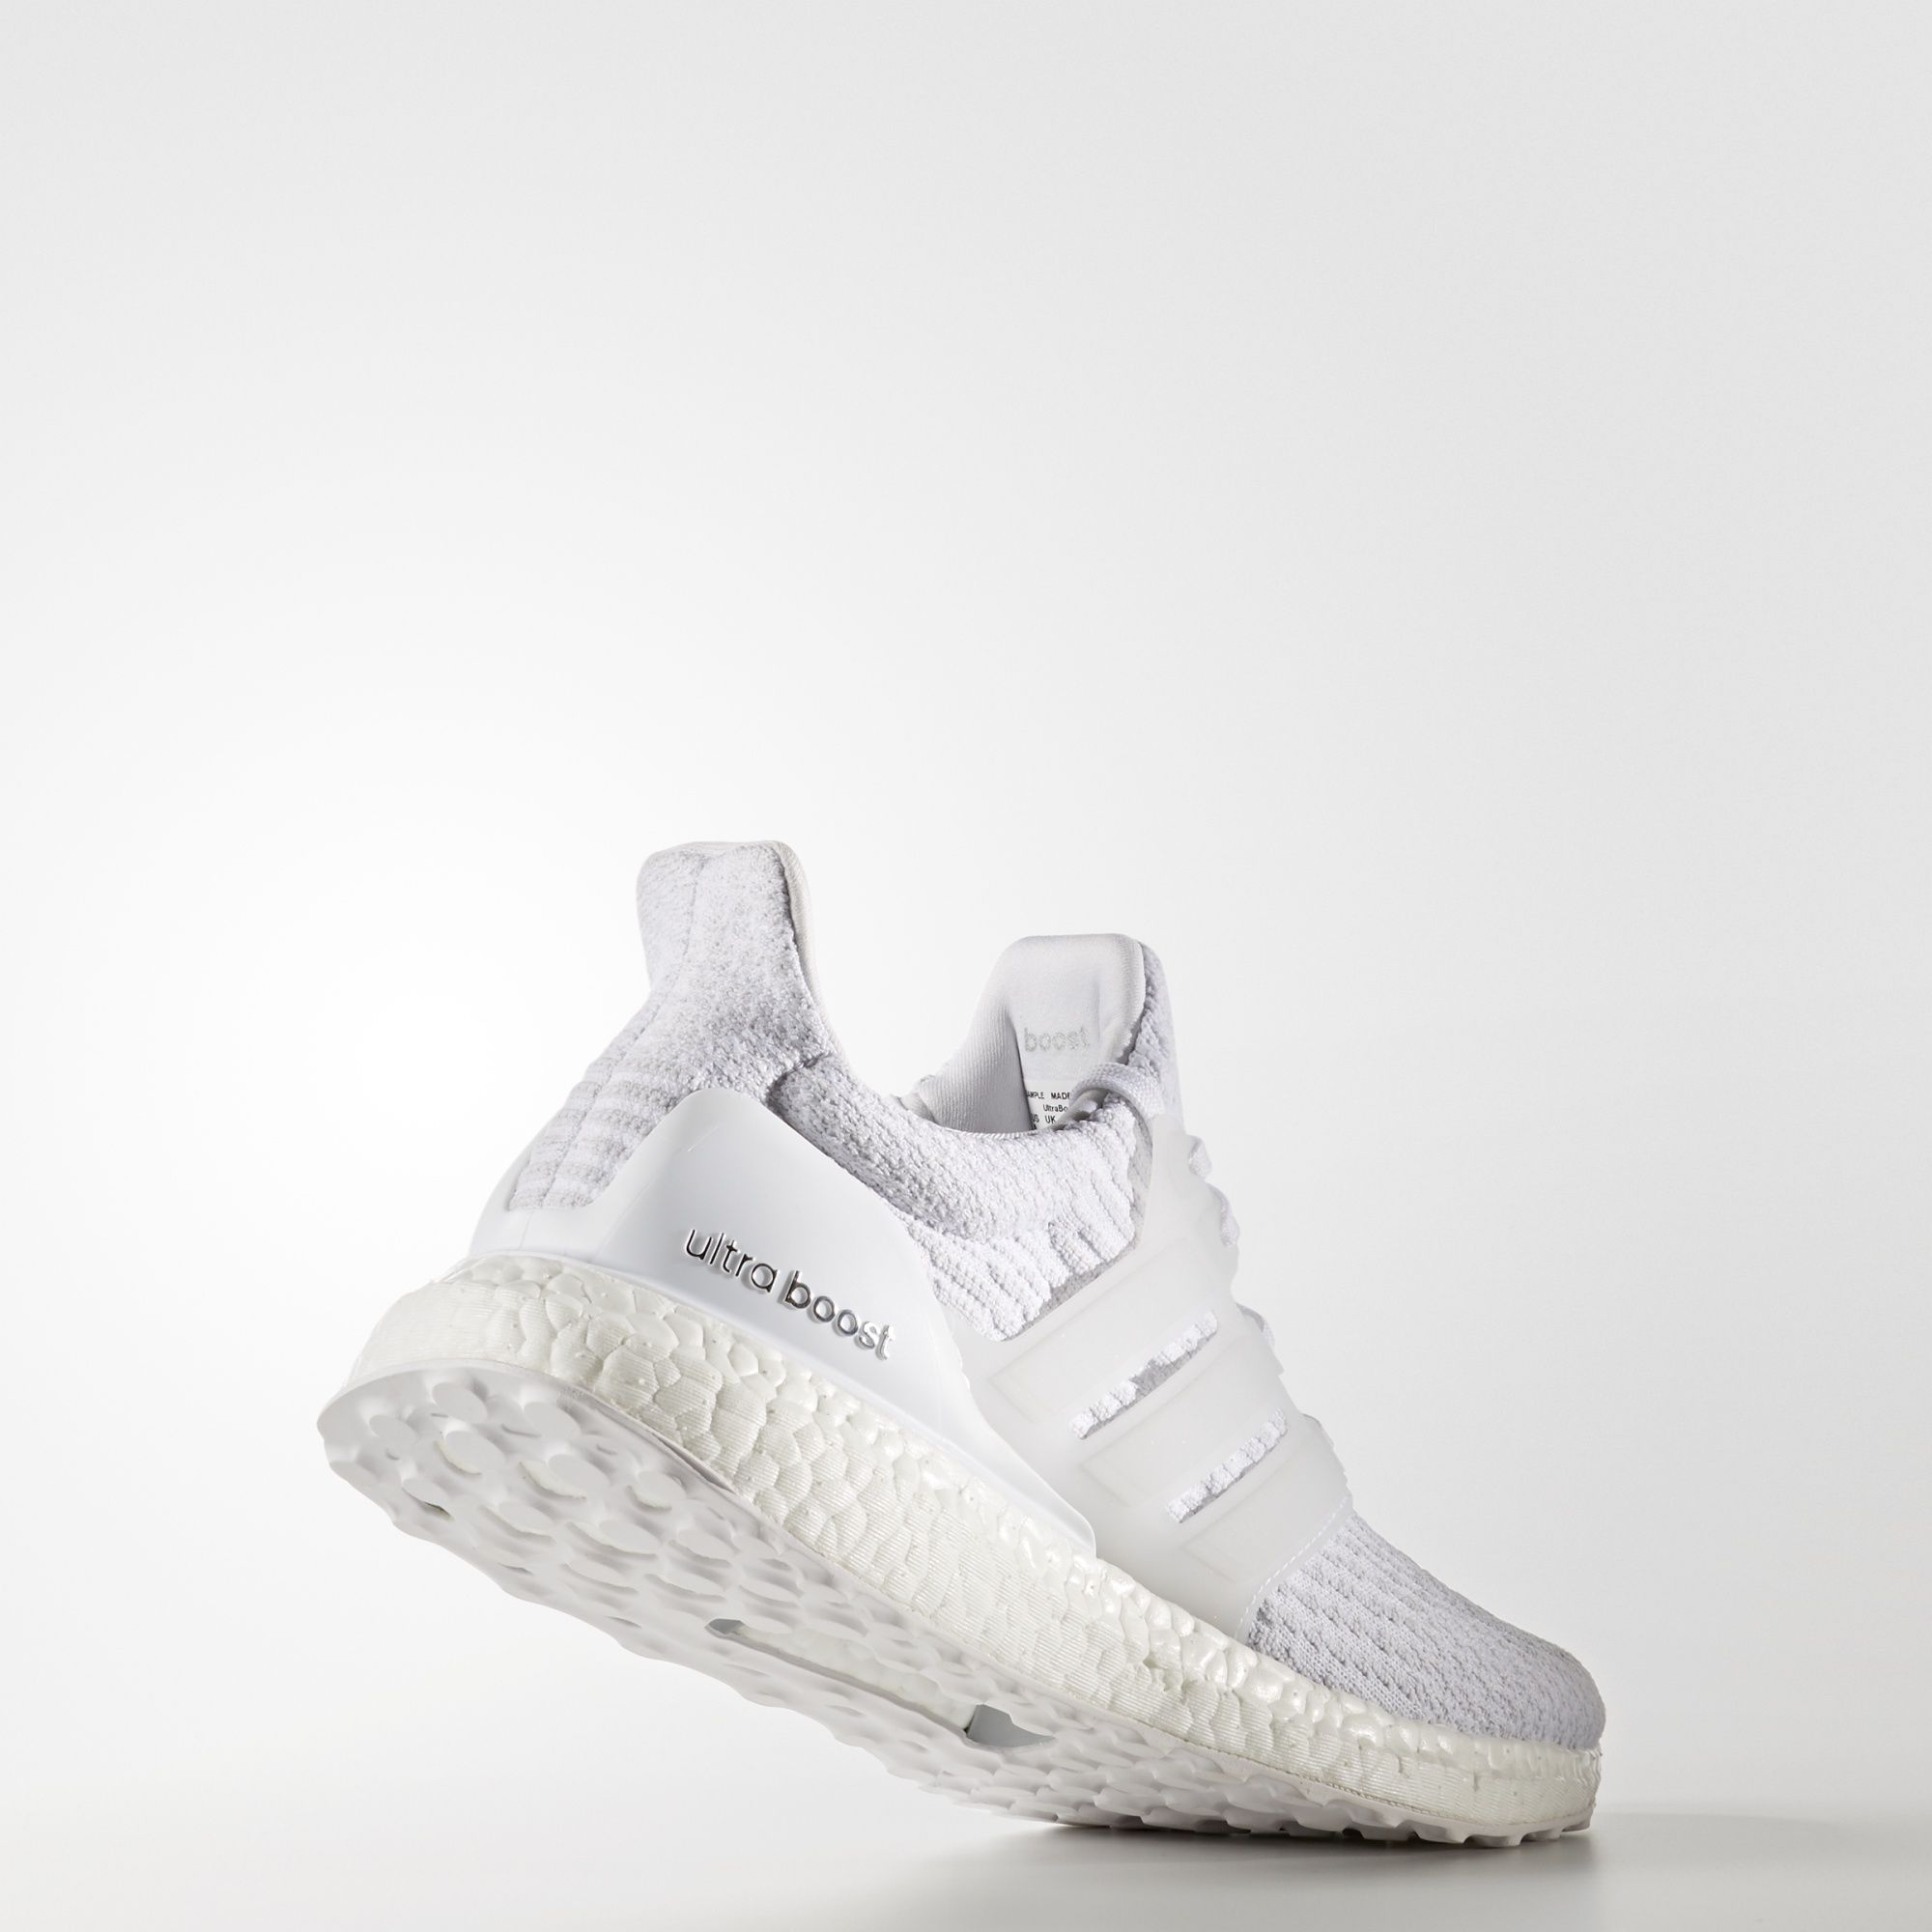 adidas ultra boost 3 0 all white BA8841 4